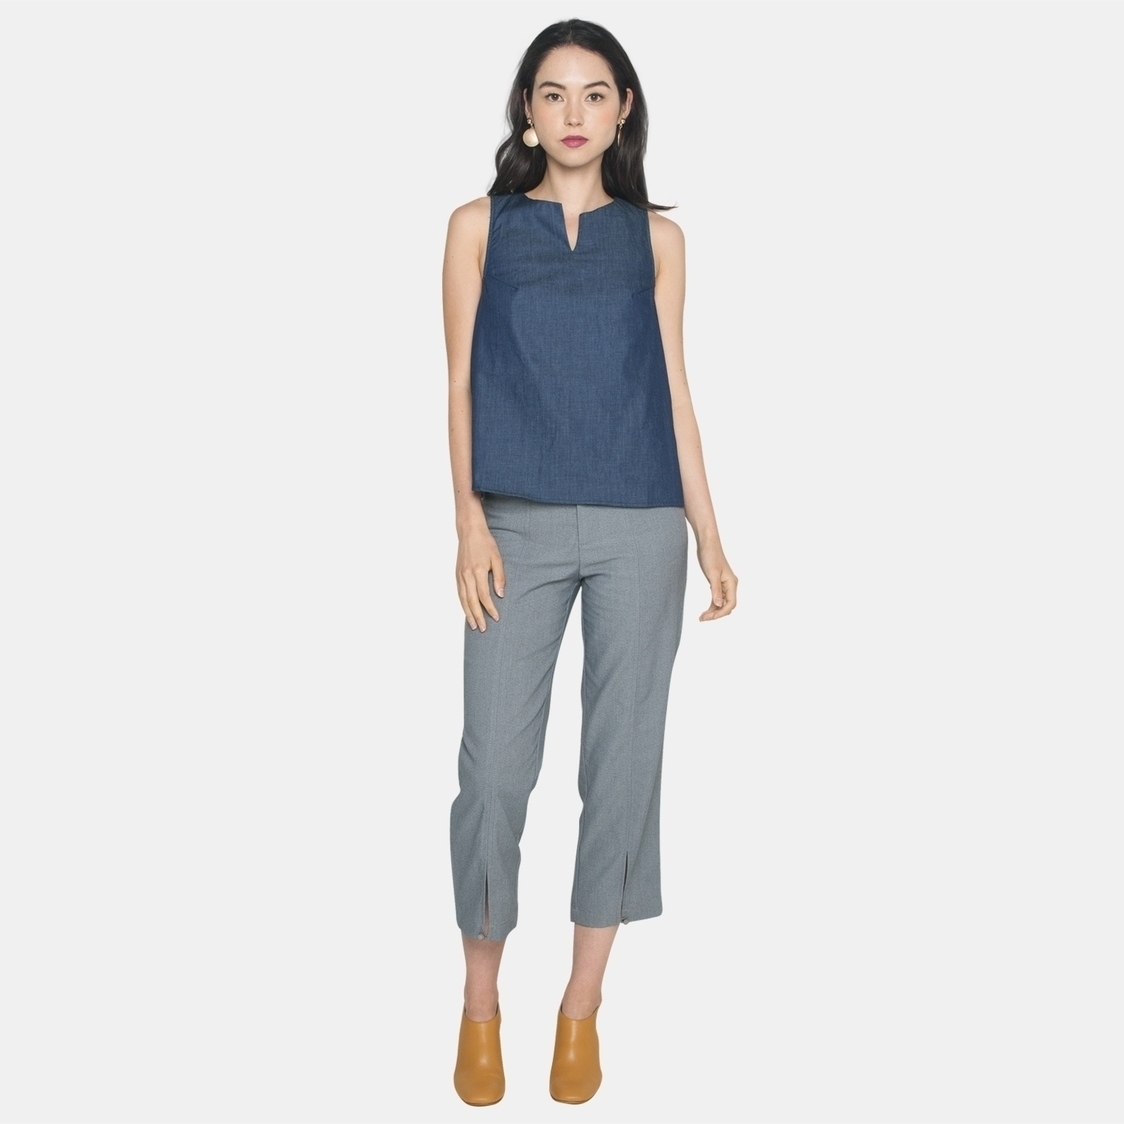 Ellysage Front Slit Pants in Light Grey